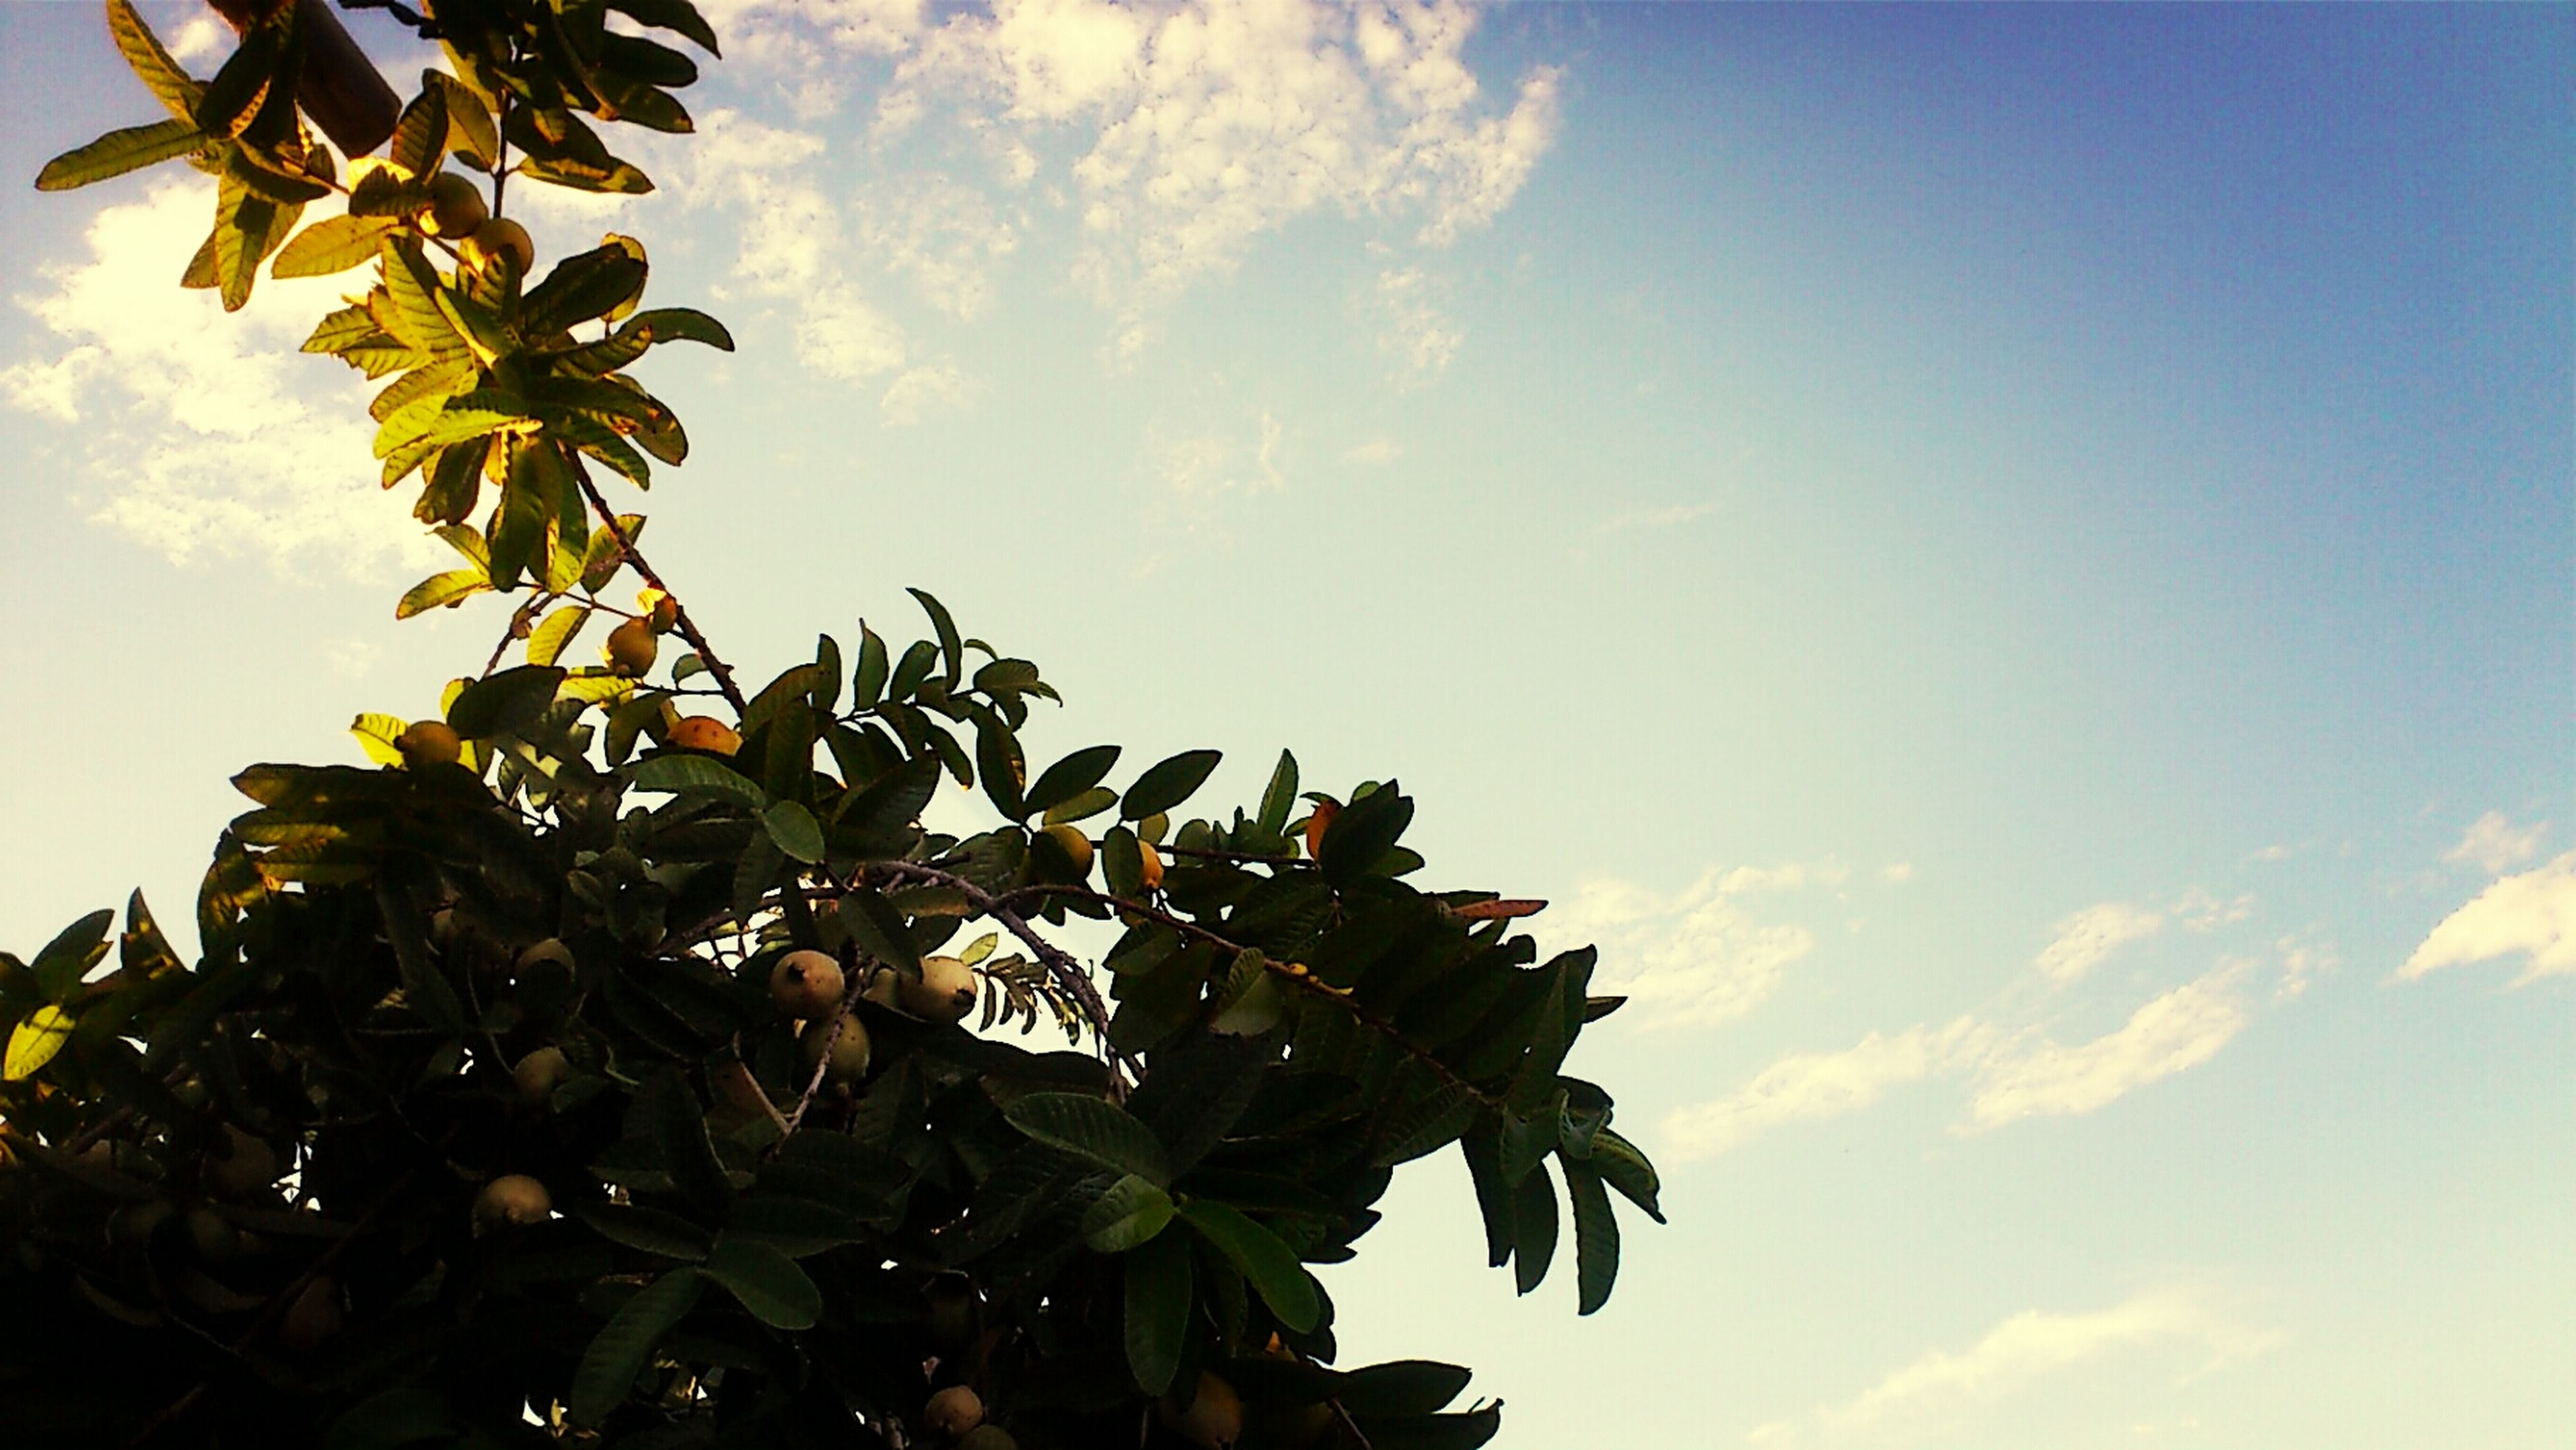 leaf, growth, low angle view, sky, nature, beauty in nature, tree, plant, cloud - sky, green color, tranquility, cloud, freshness, sunlight, day, outdoors, no people, close-up, growing, branch